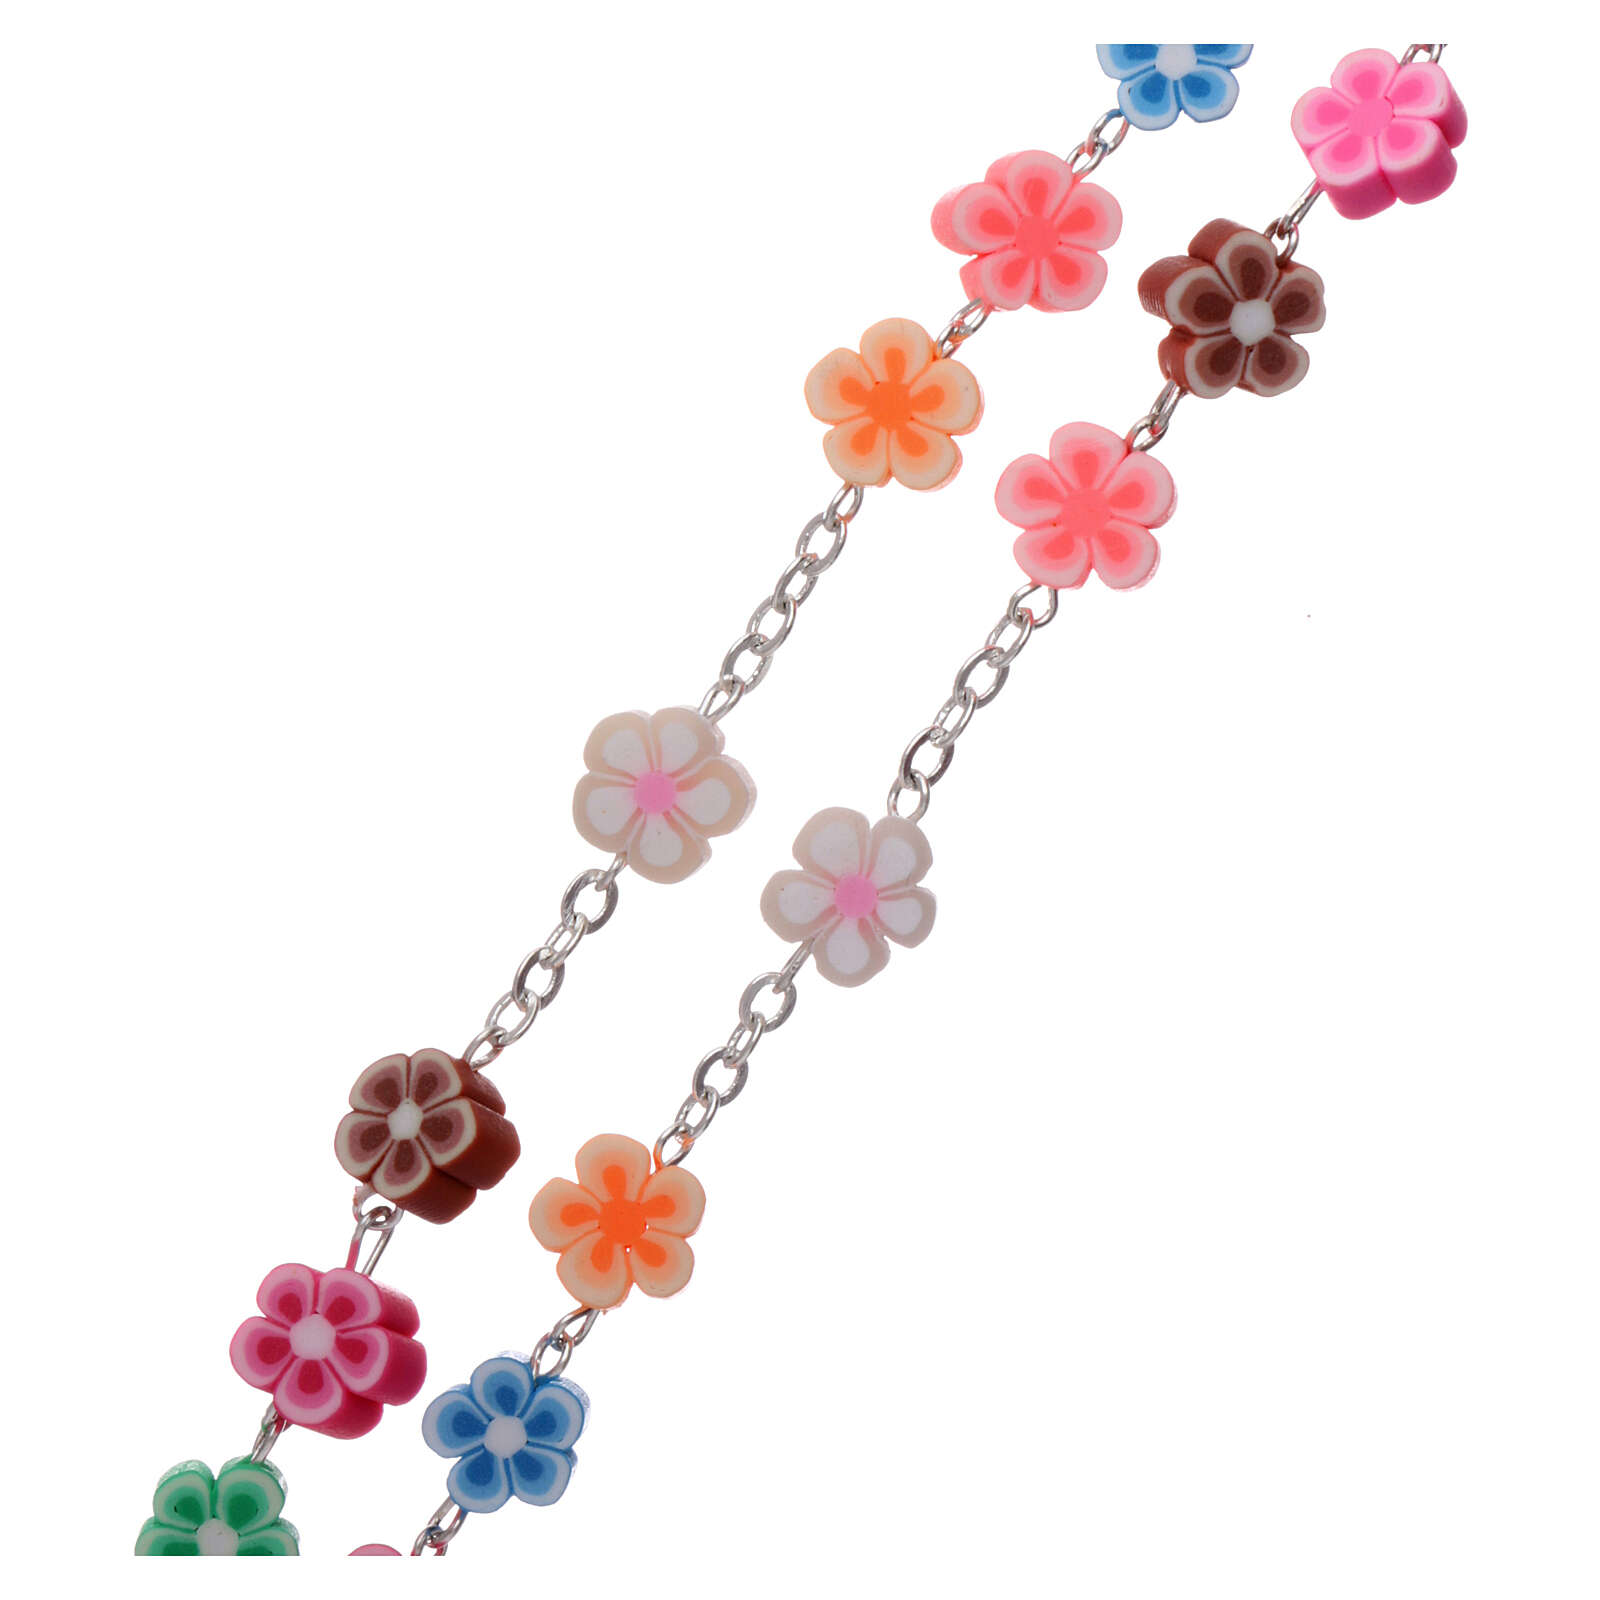 Plastic rosary flower shaped multicolored beads 5 mm 4